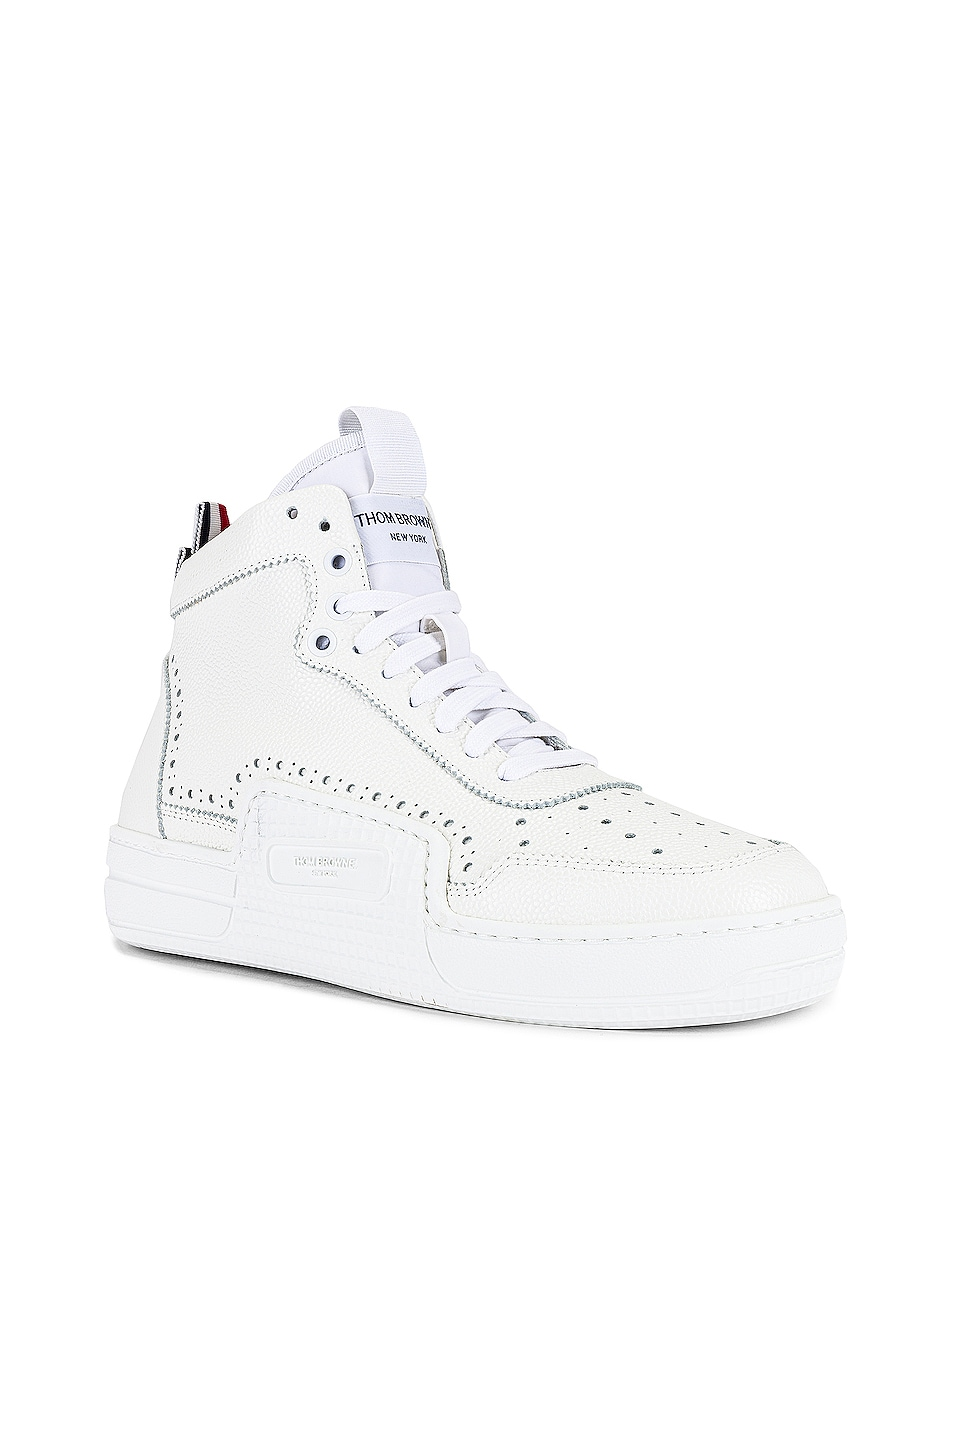 Image 1 of Thom Browne Basketball High Top Sneaker in White